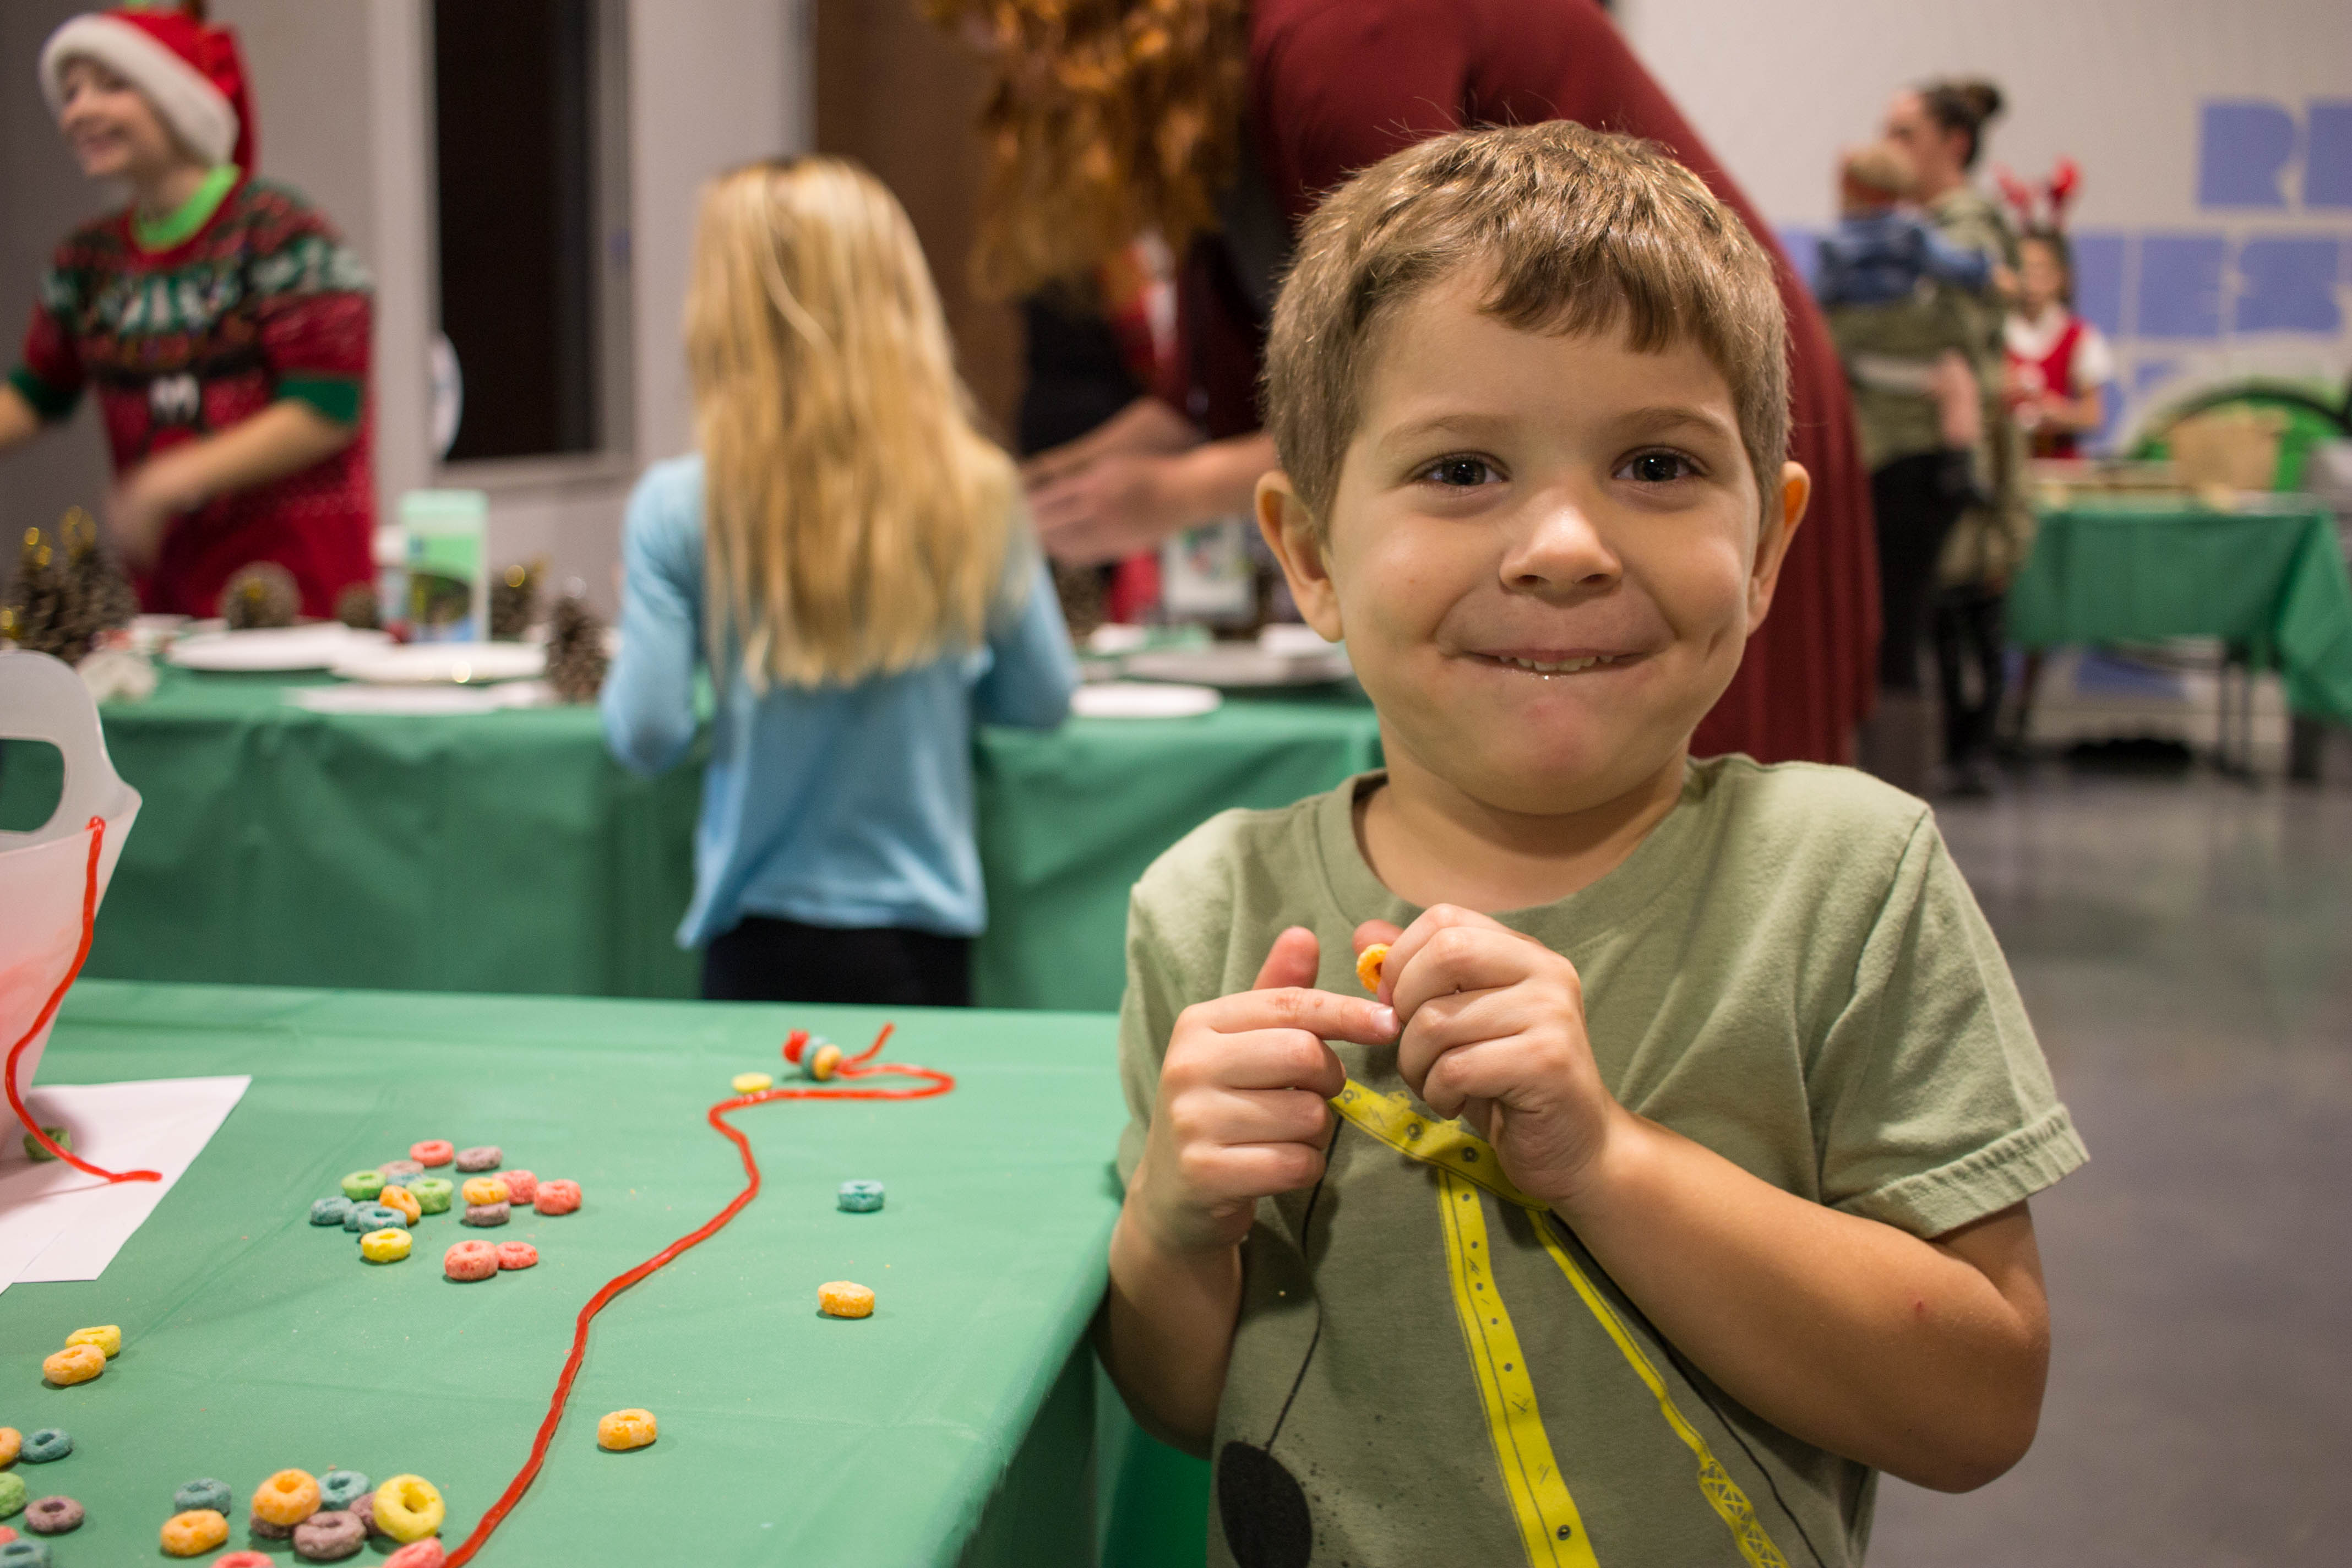 Johnny making a cereal necklace at the craft table during breakfast with Santa